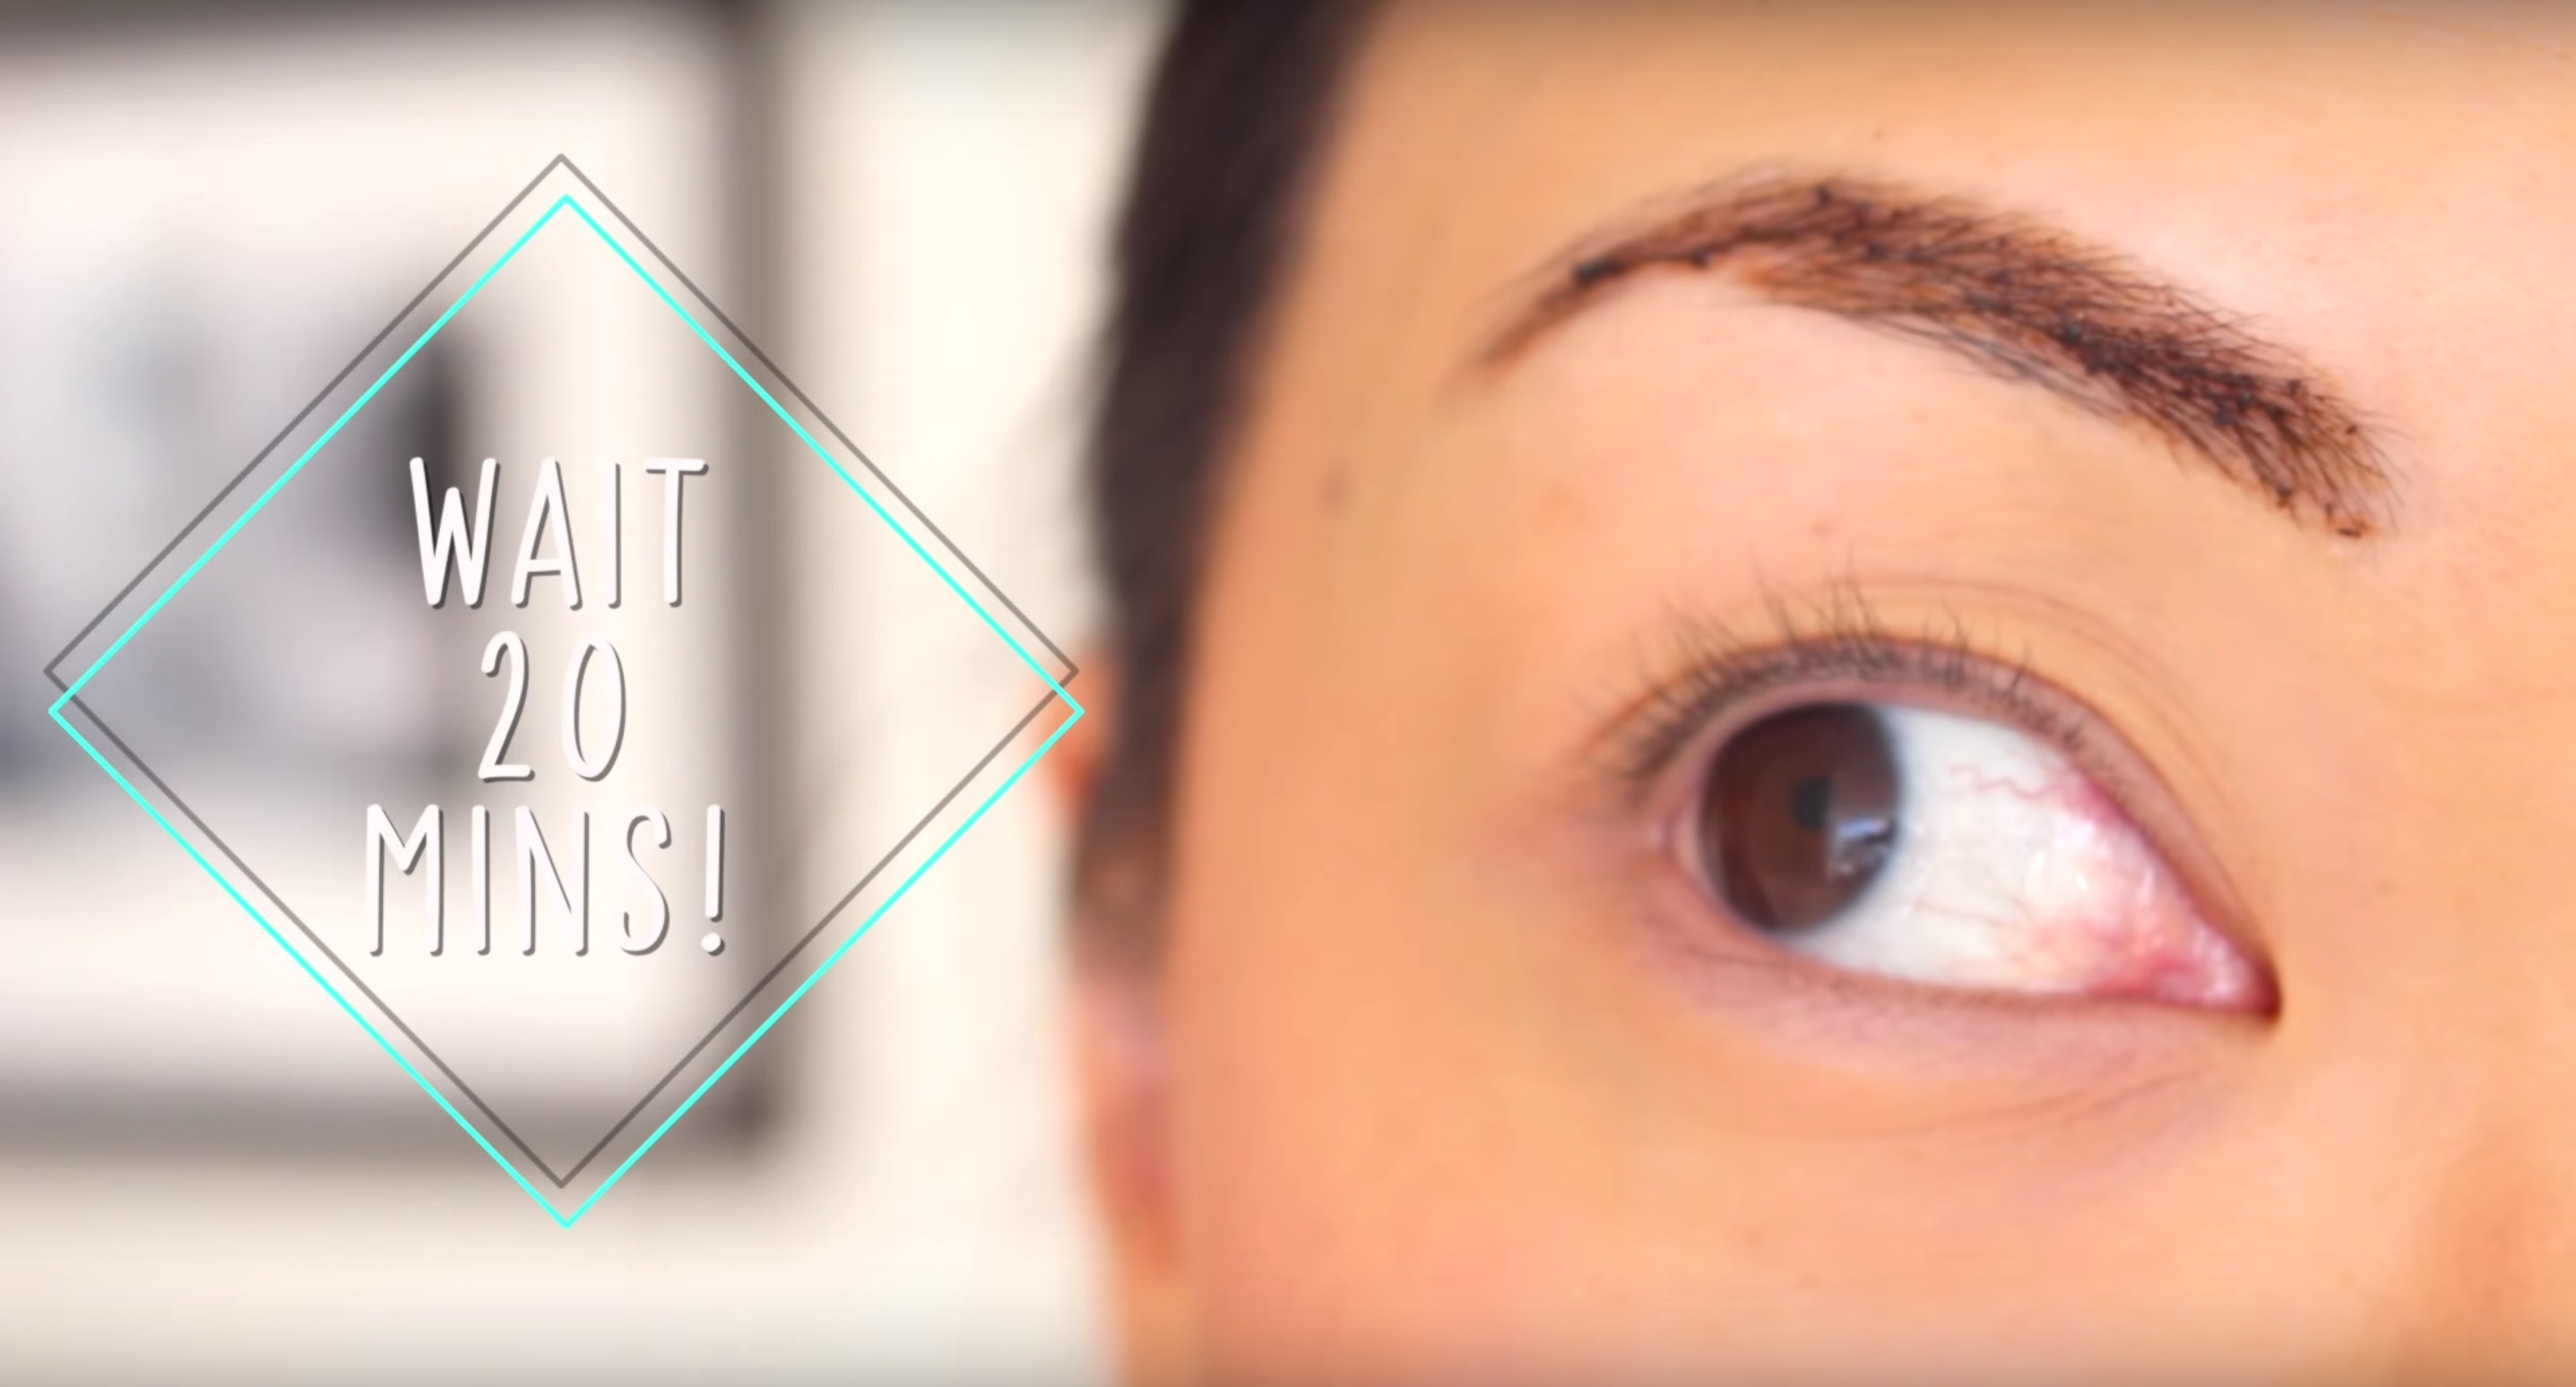 How To Tint Your Eyebrows With Coffee For A Quick Easy Fix Video